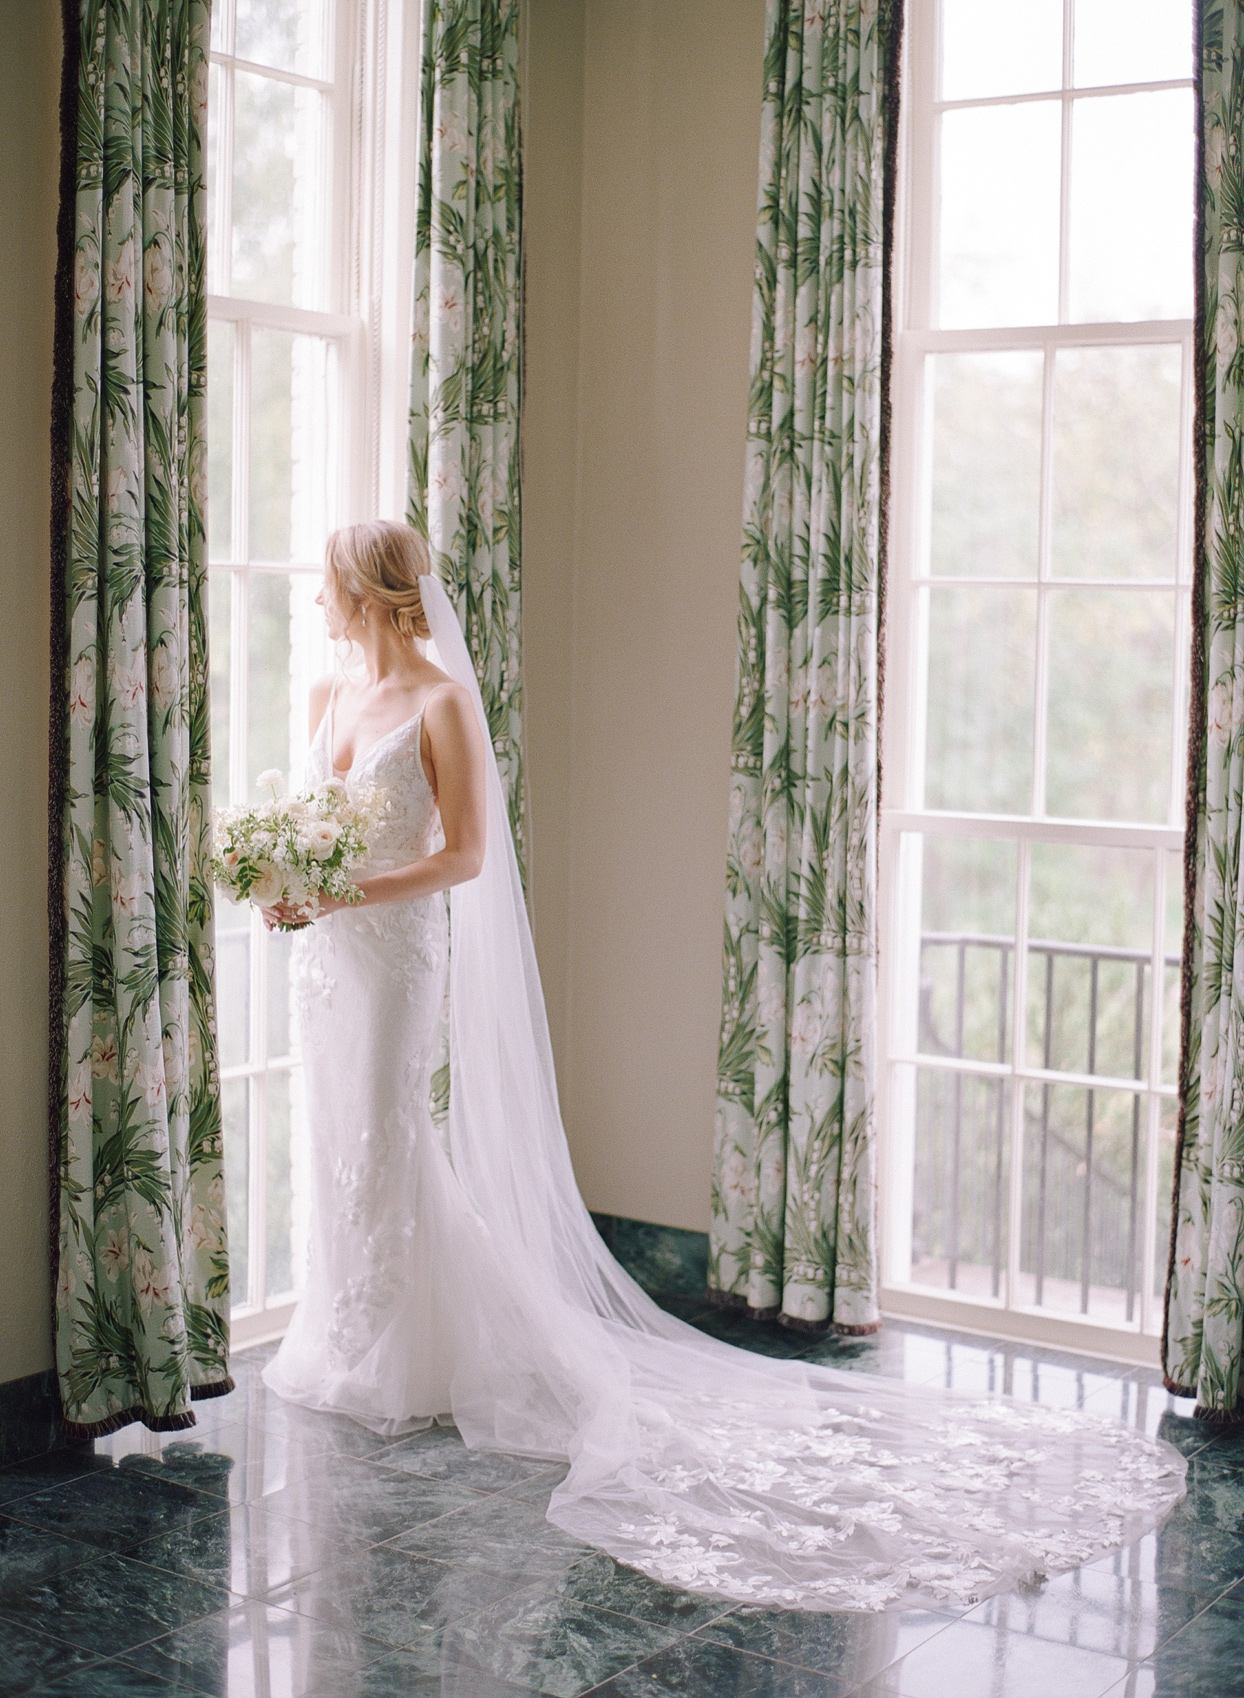 bride wearing long lace train, v-neck, thin strap wedding dress with veil